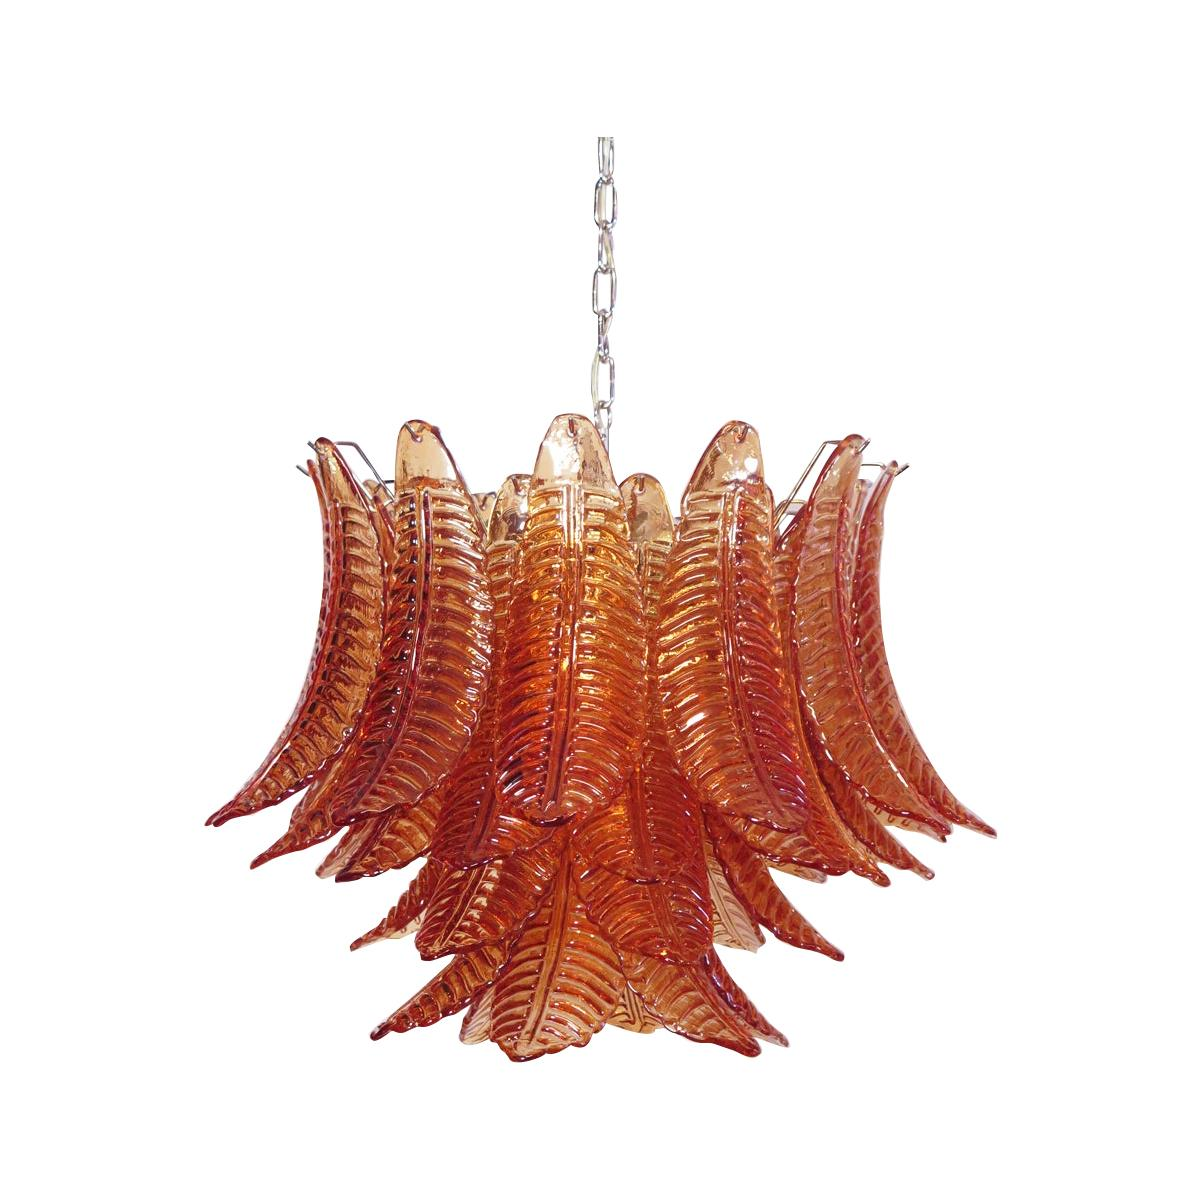 Italian Murano Six-Tier Amber Felci Glass Chandelier, 36 Glasses